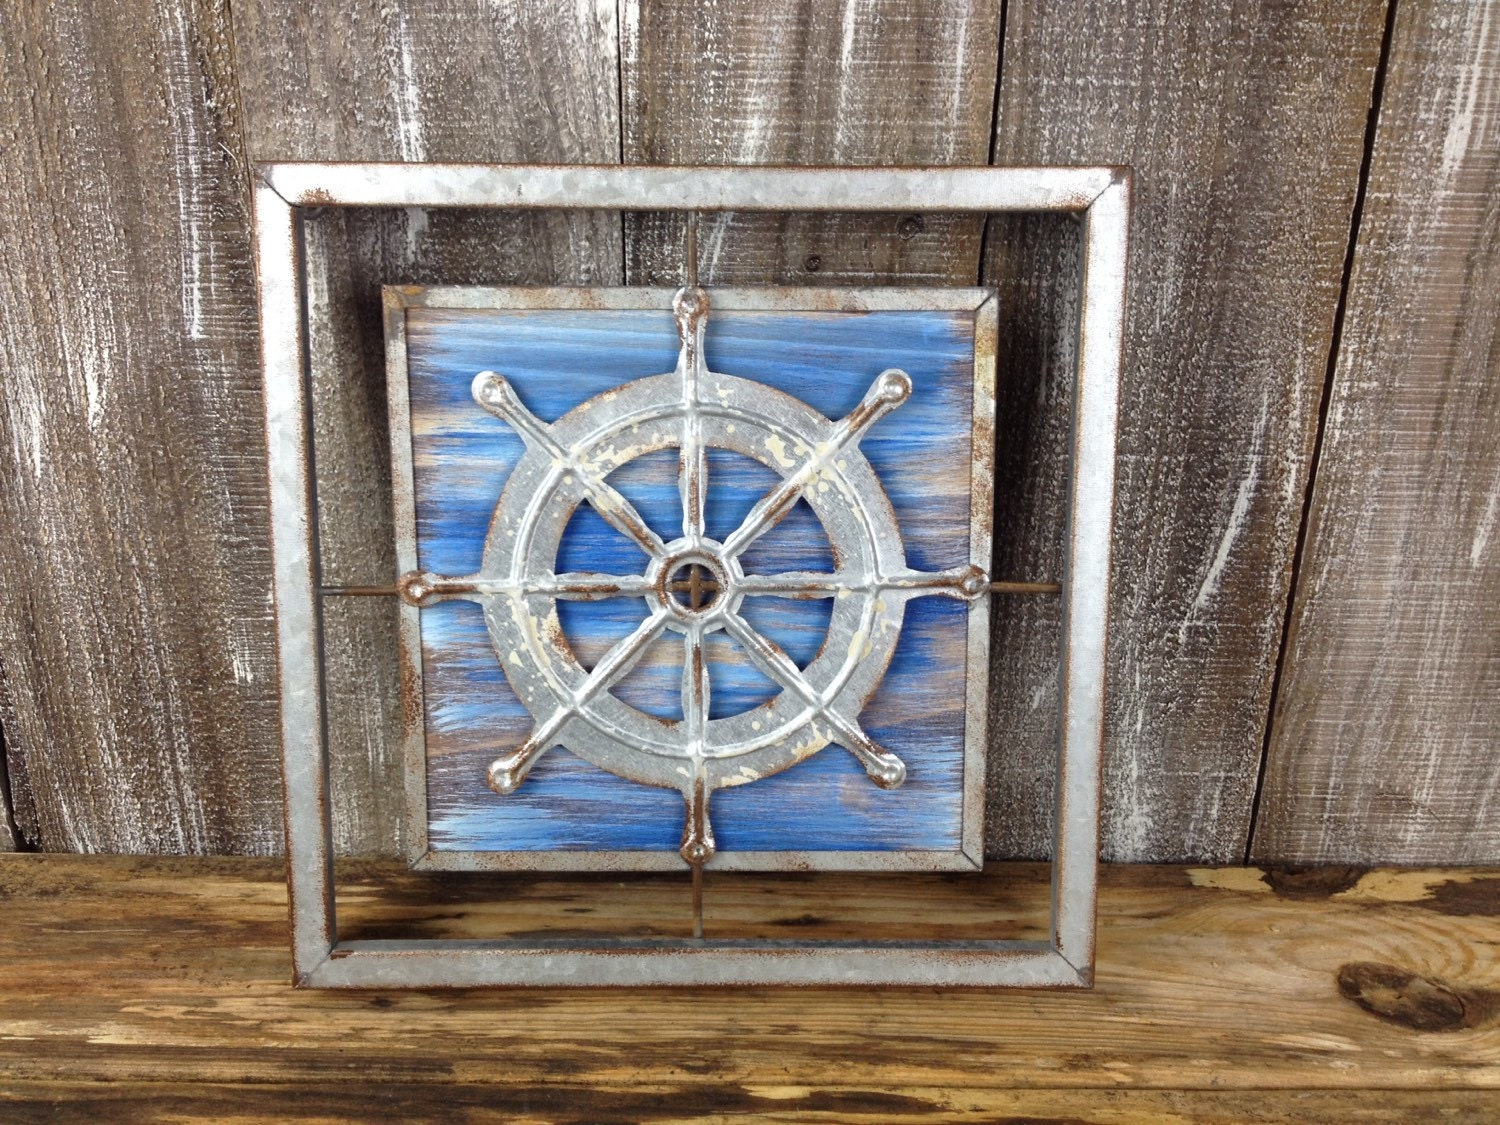 Galvanized Metal Ships Wheel Wall Decor Rustic Wooden Accent